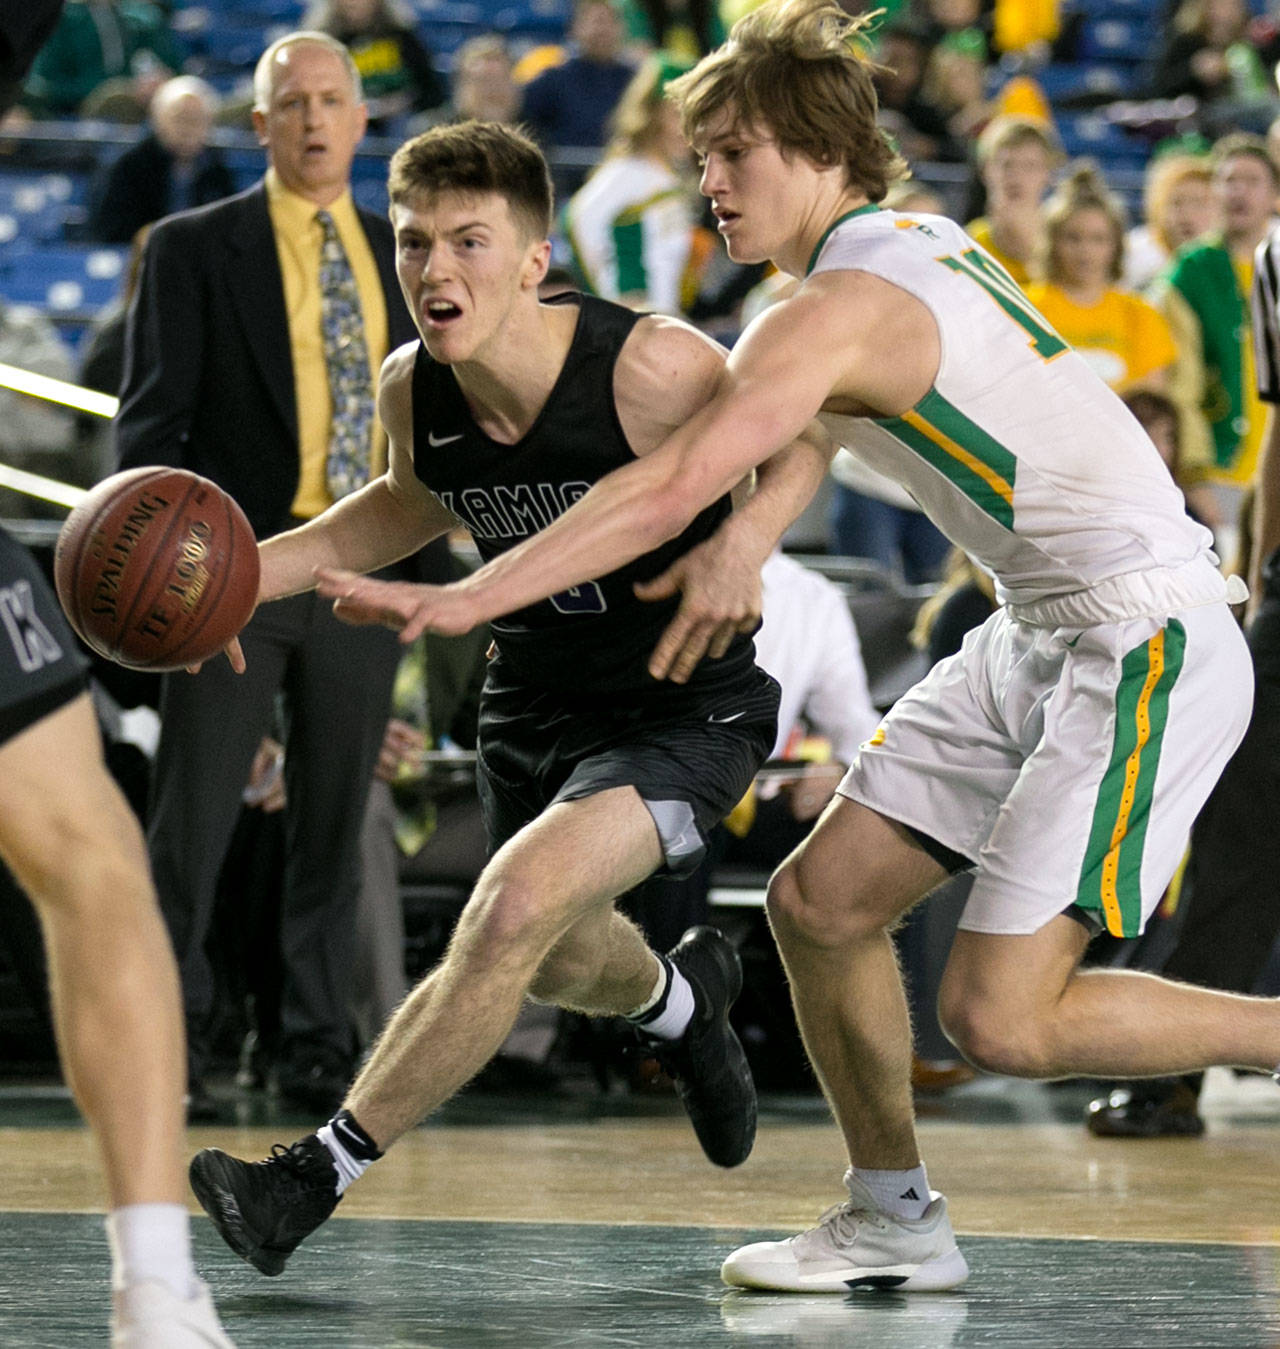 Kamiak's Carson Tuttle drives with Richland's Cody Sanderson defending during a 4A boys Hardwood Classic game on March 1, 2018, at the Tacoma Dome. (Kevin Clark / The Herald)